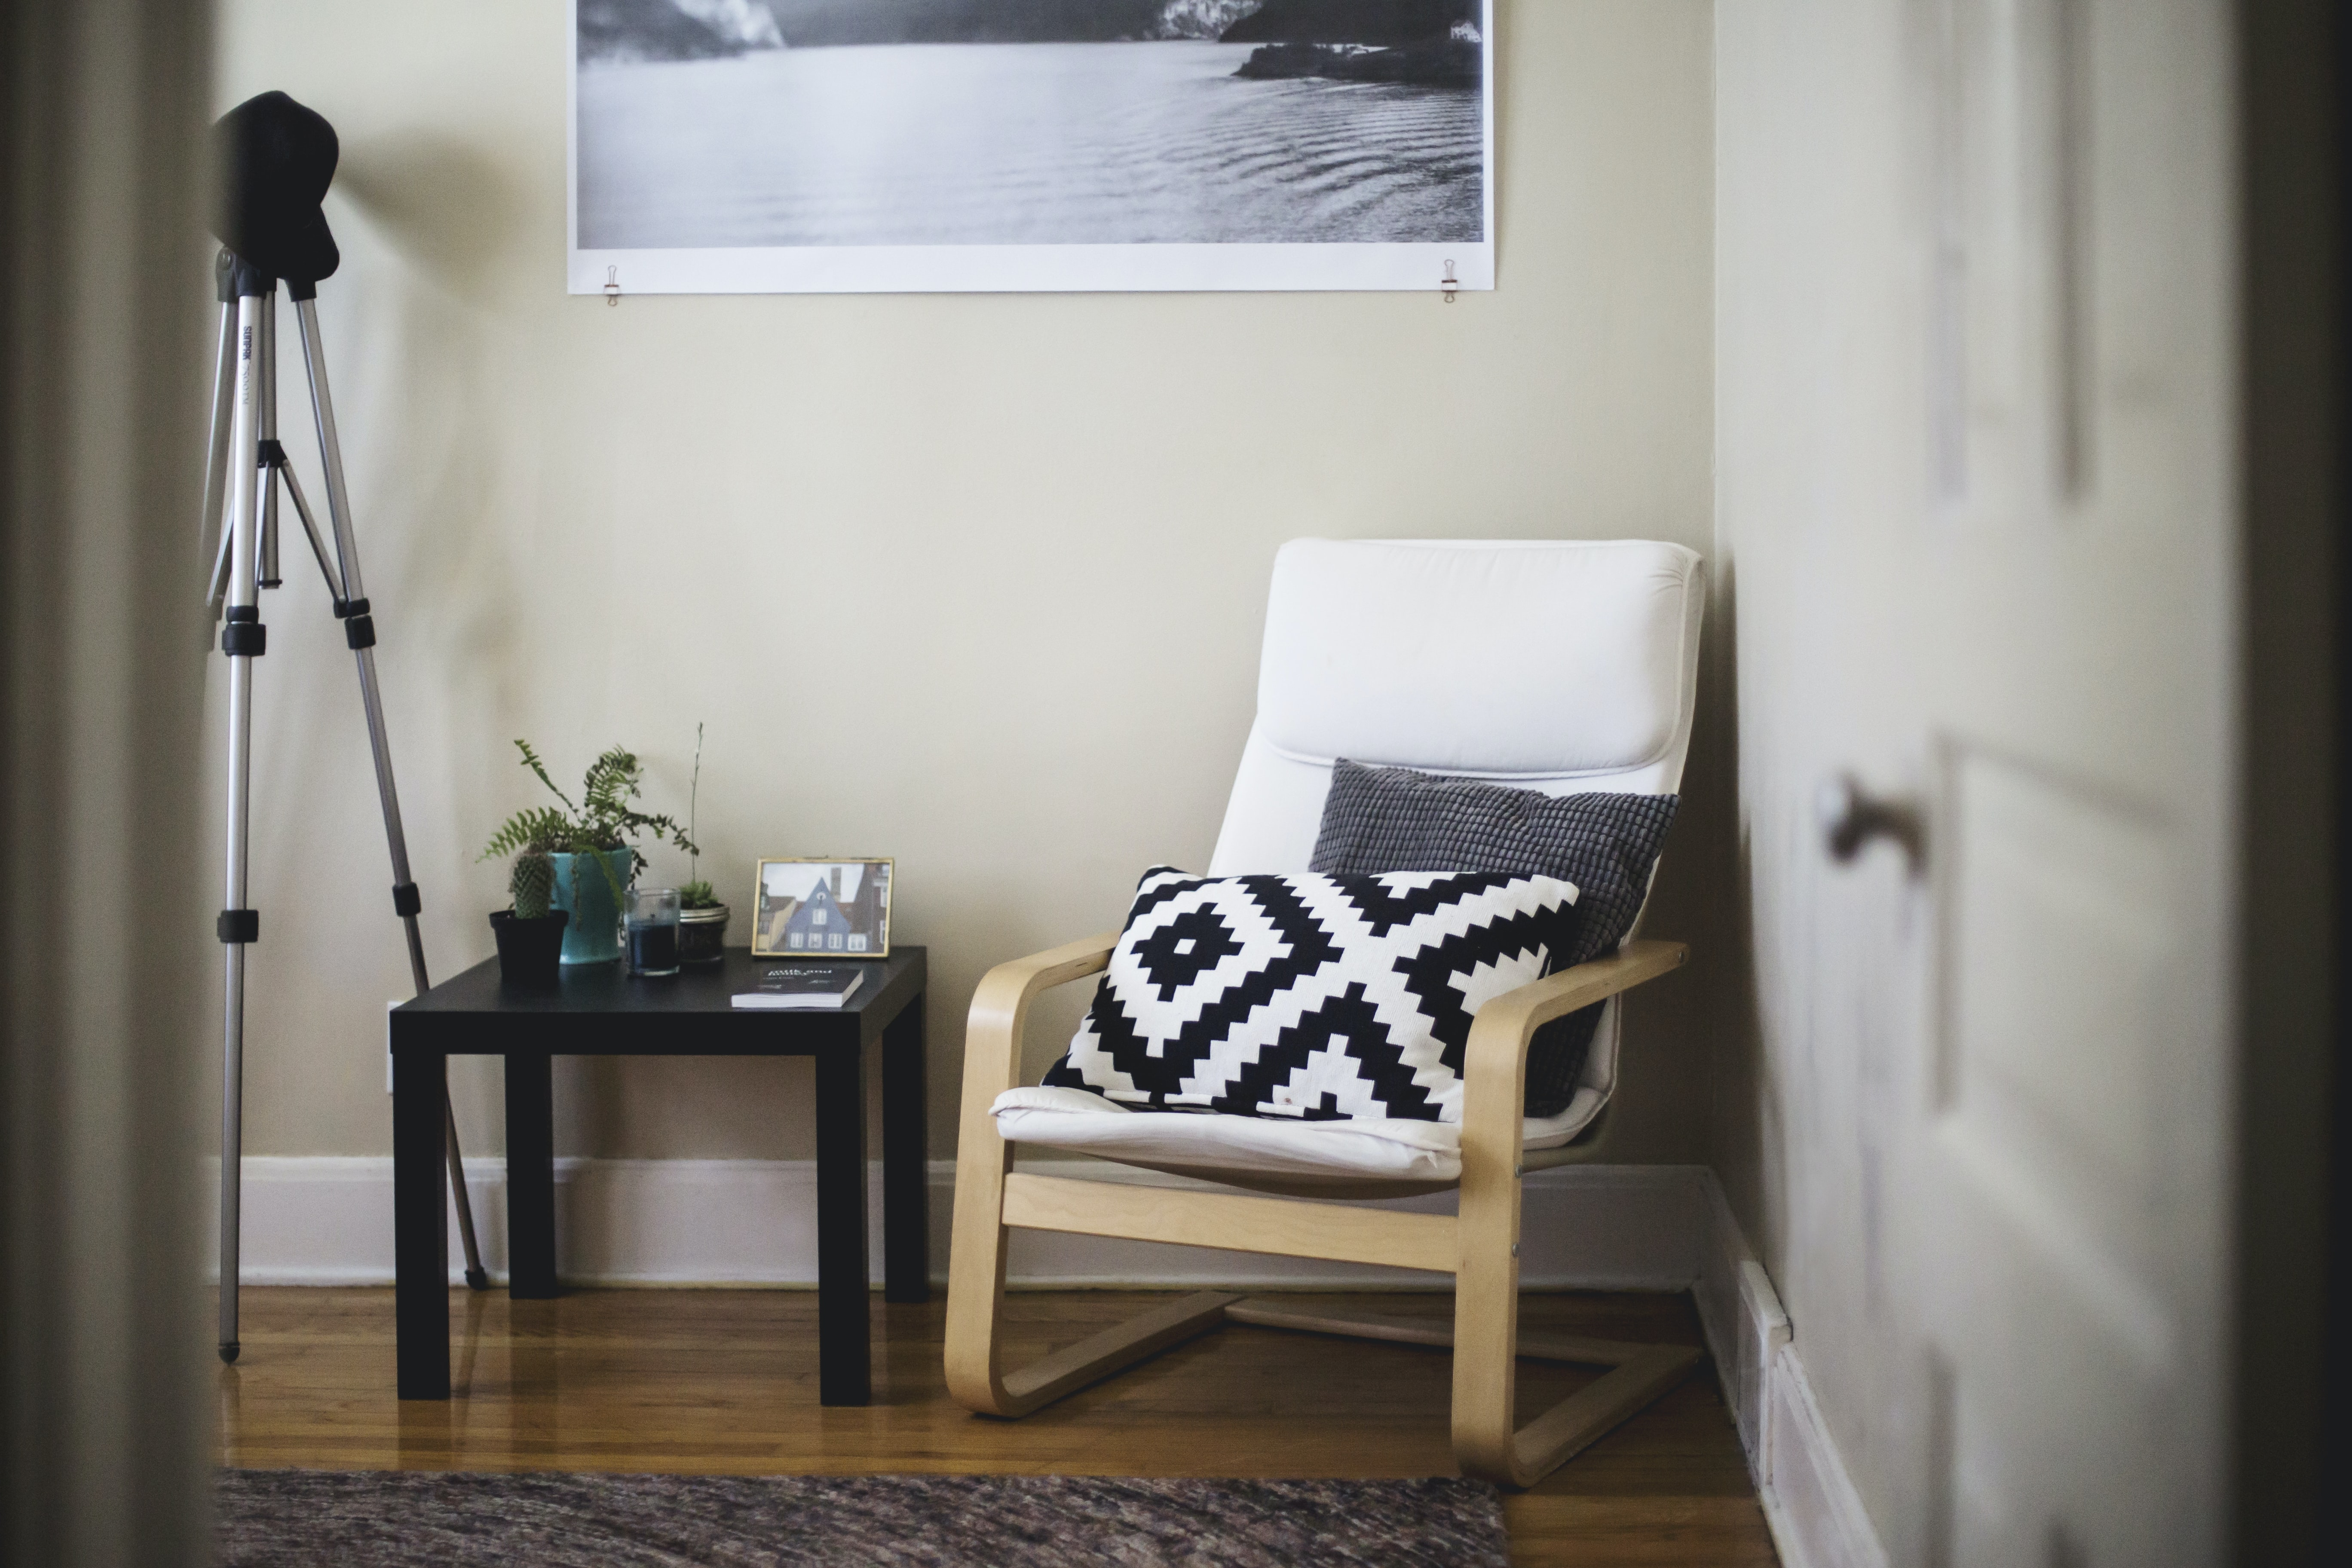 A chair with two pillows next to a coffee table in the corner of a room